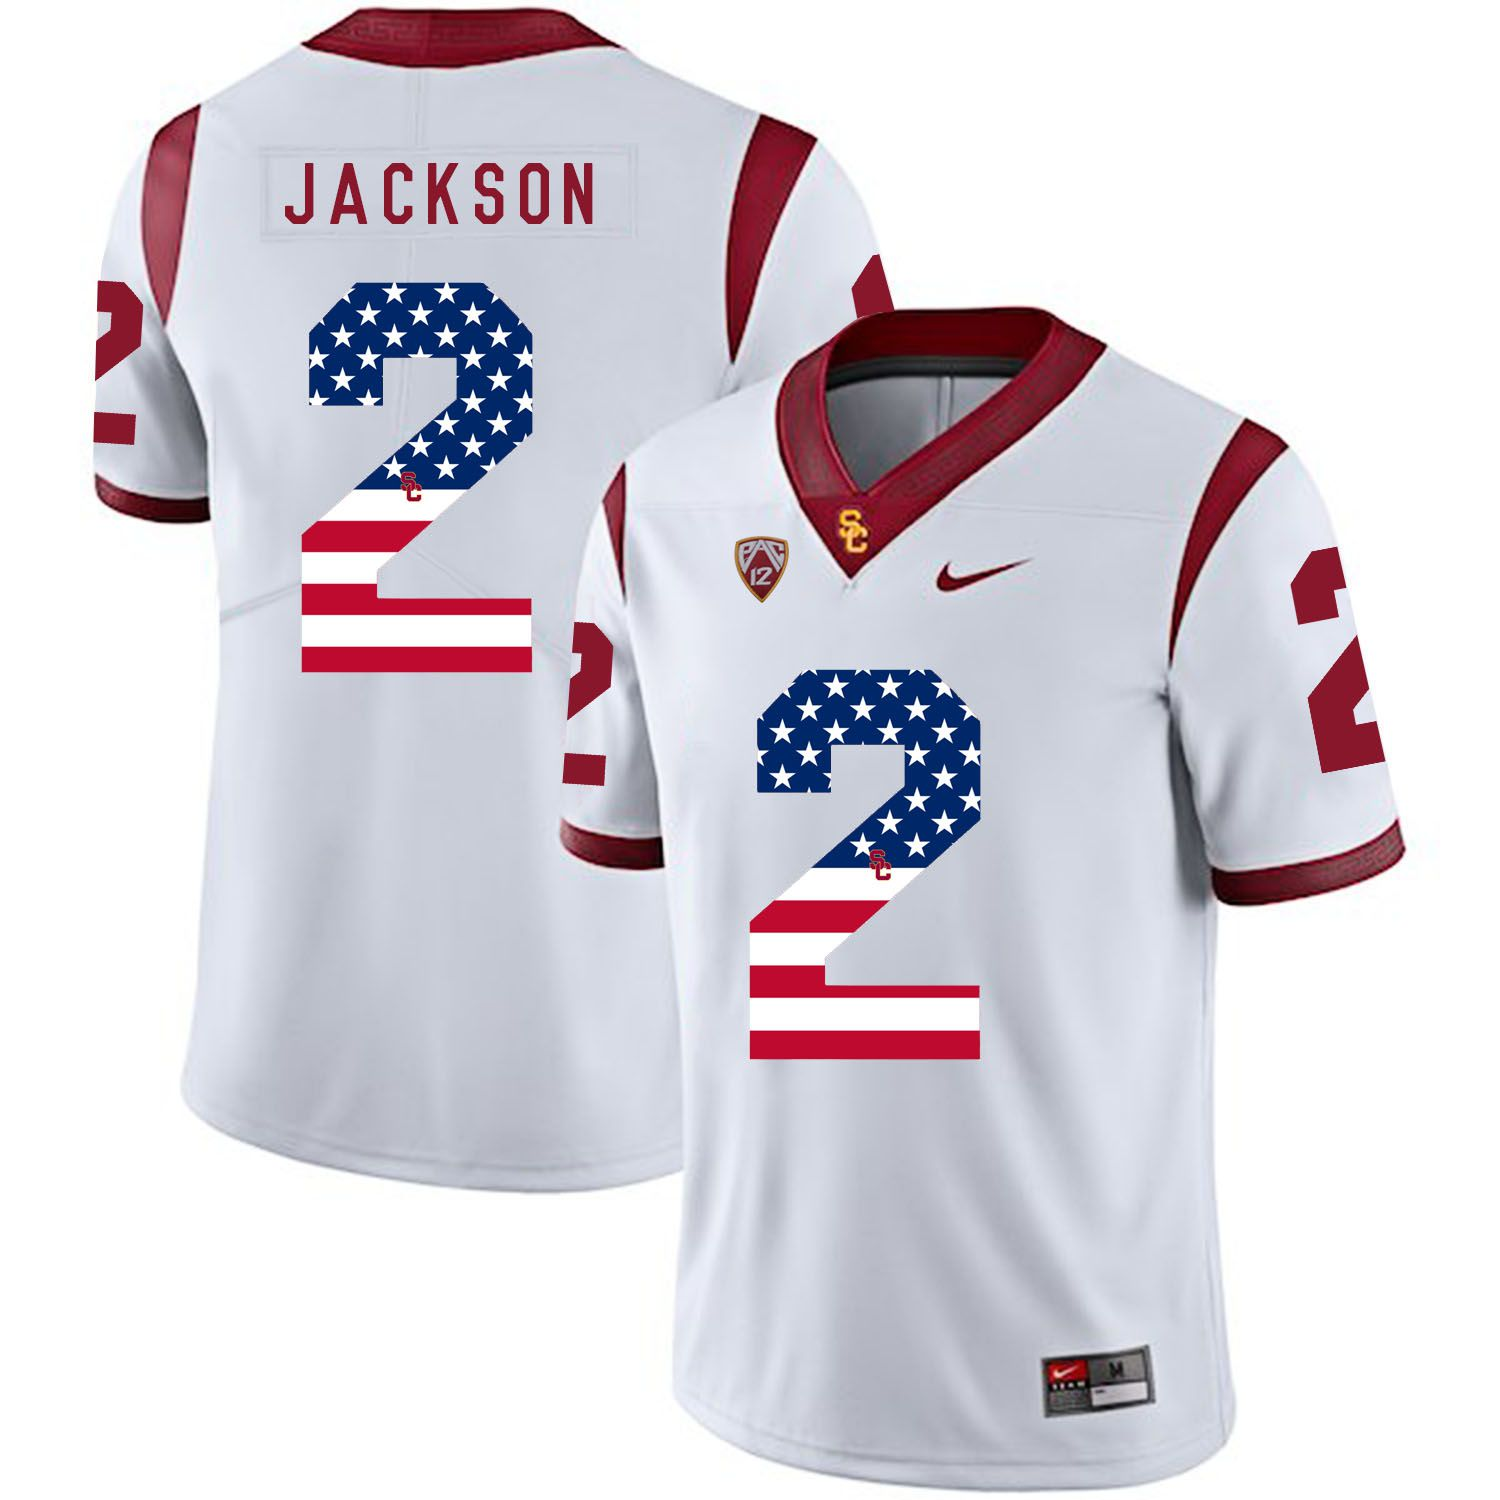 Men USC Trojans 2 Jackson White Flag Customized NCAA Jerseys